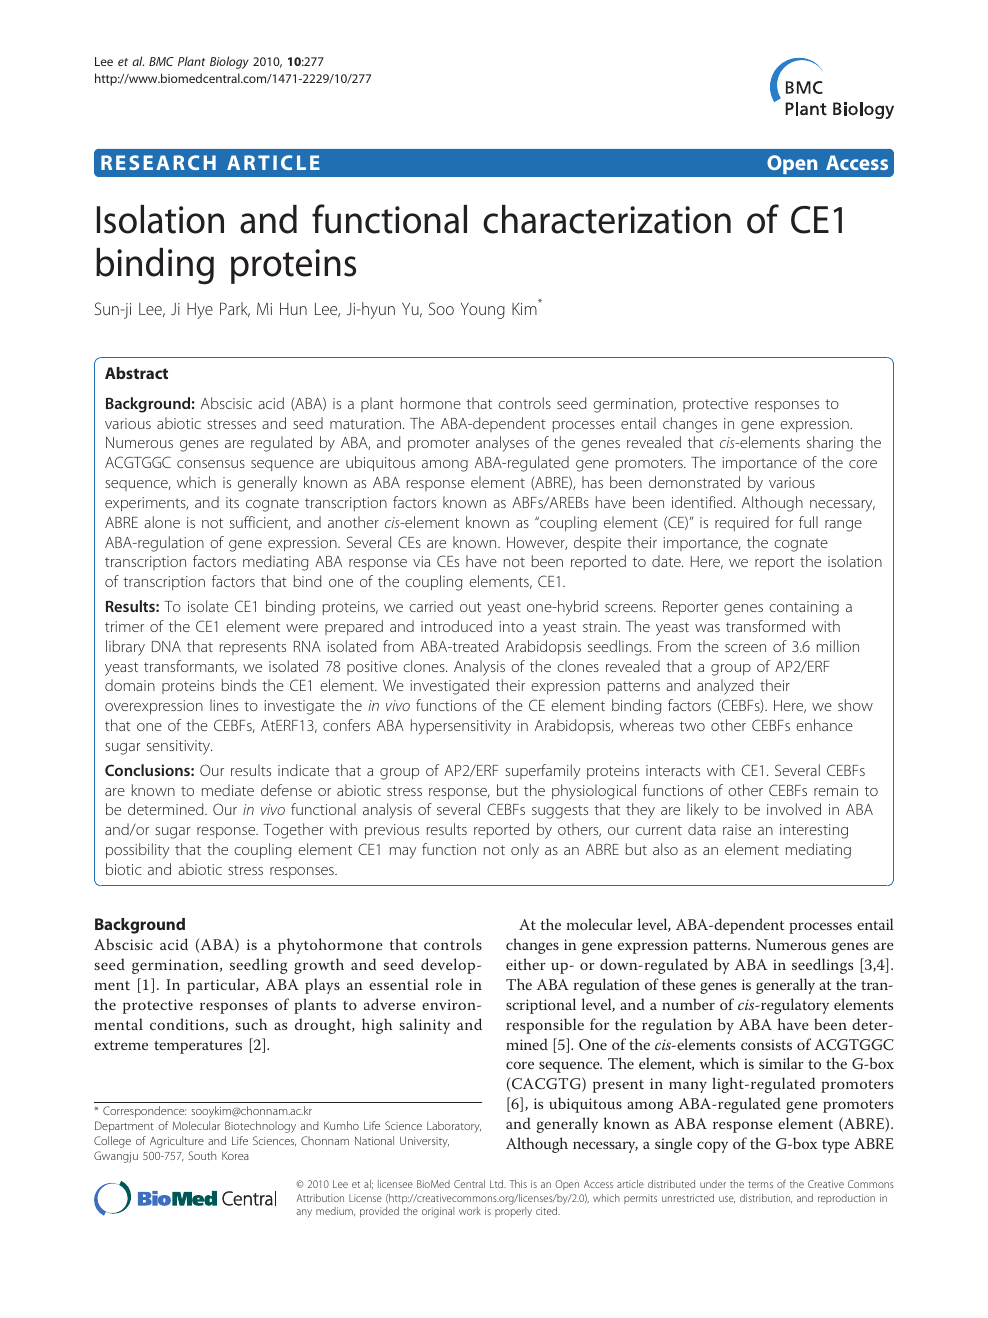 Isolation And Functional Characterization Of Ce1 Binding tout Reproduction De Figures Ce1